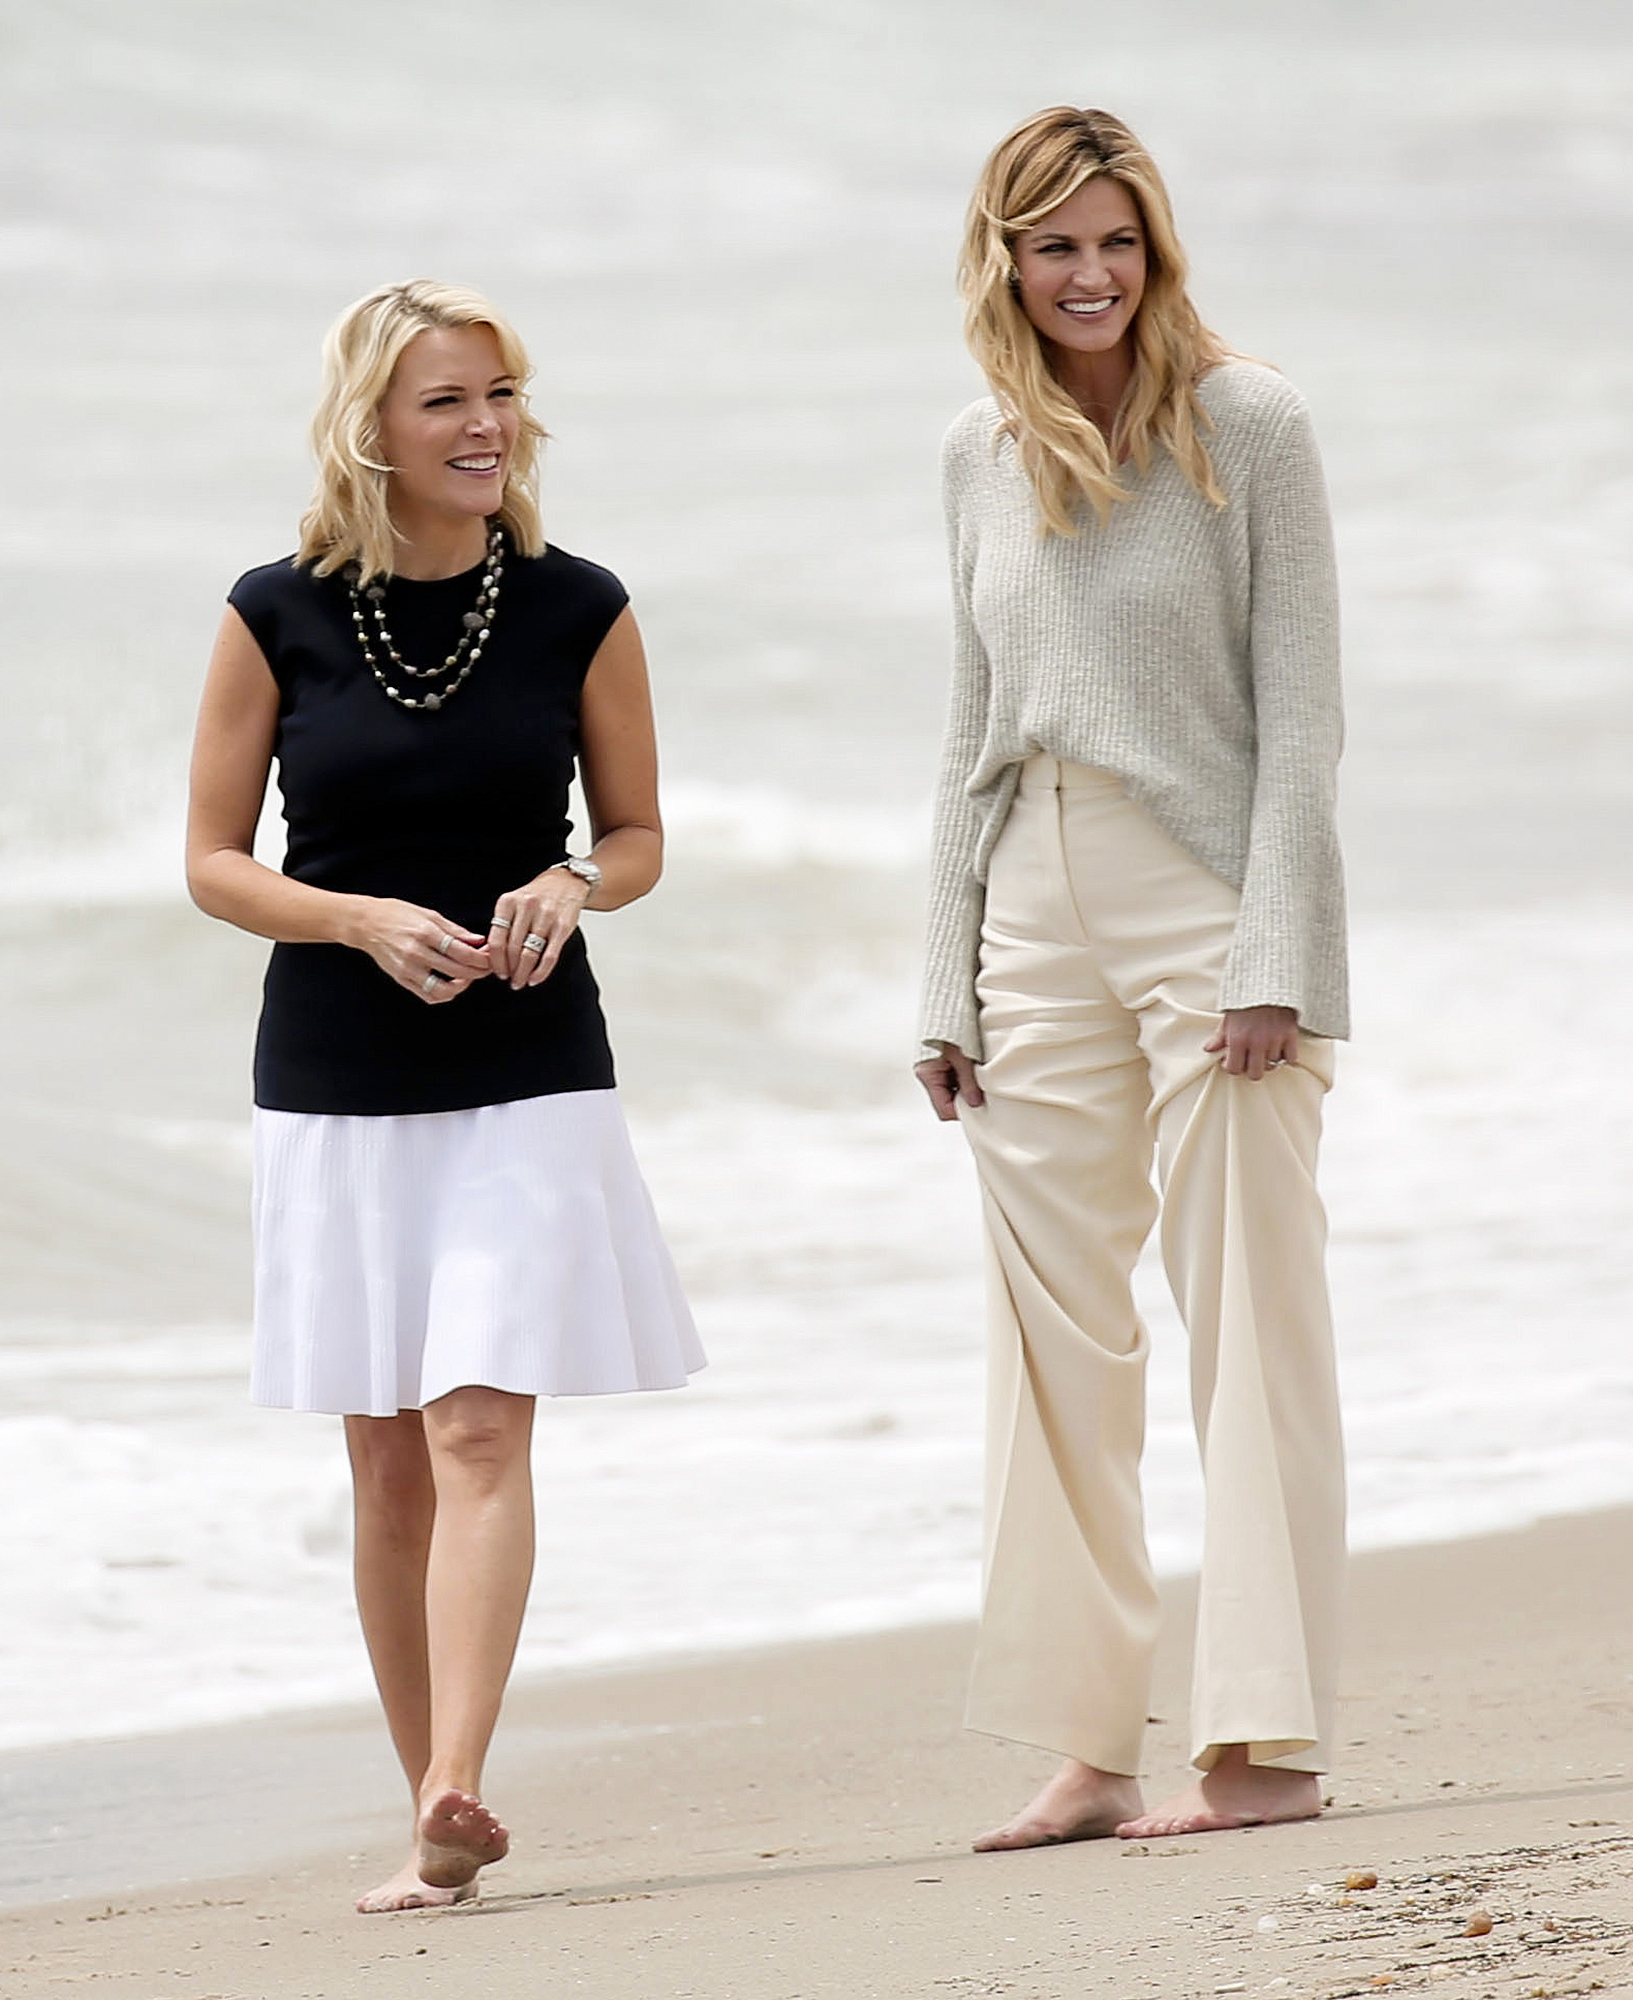 EXCLUSIVE: Television presenters Megyn Kelly and Erin Andrews look the best of pals as the pair appear to be conducting an interview while strolling along the beach in Santa Monica